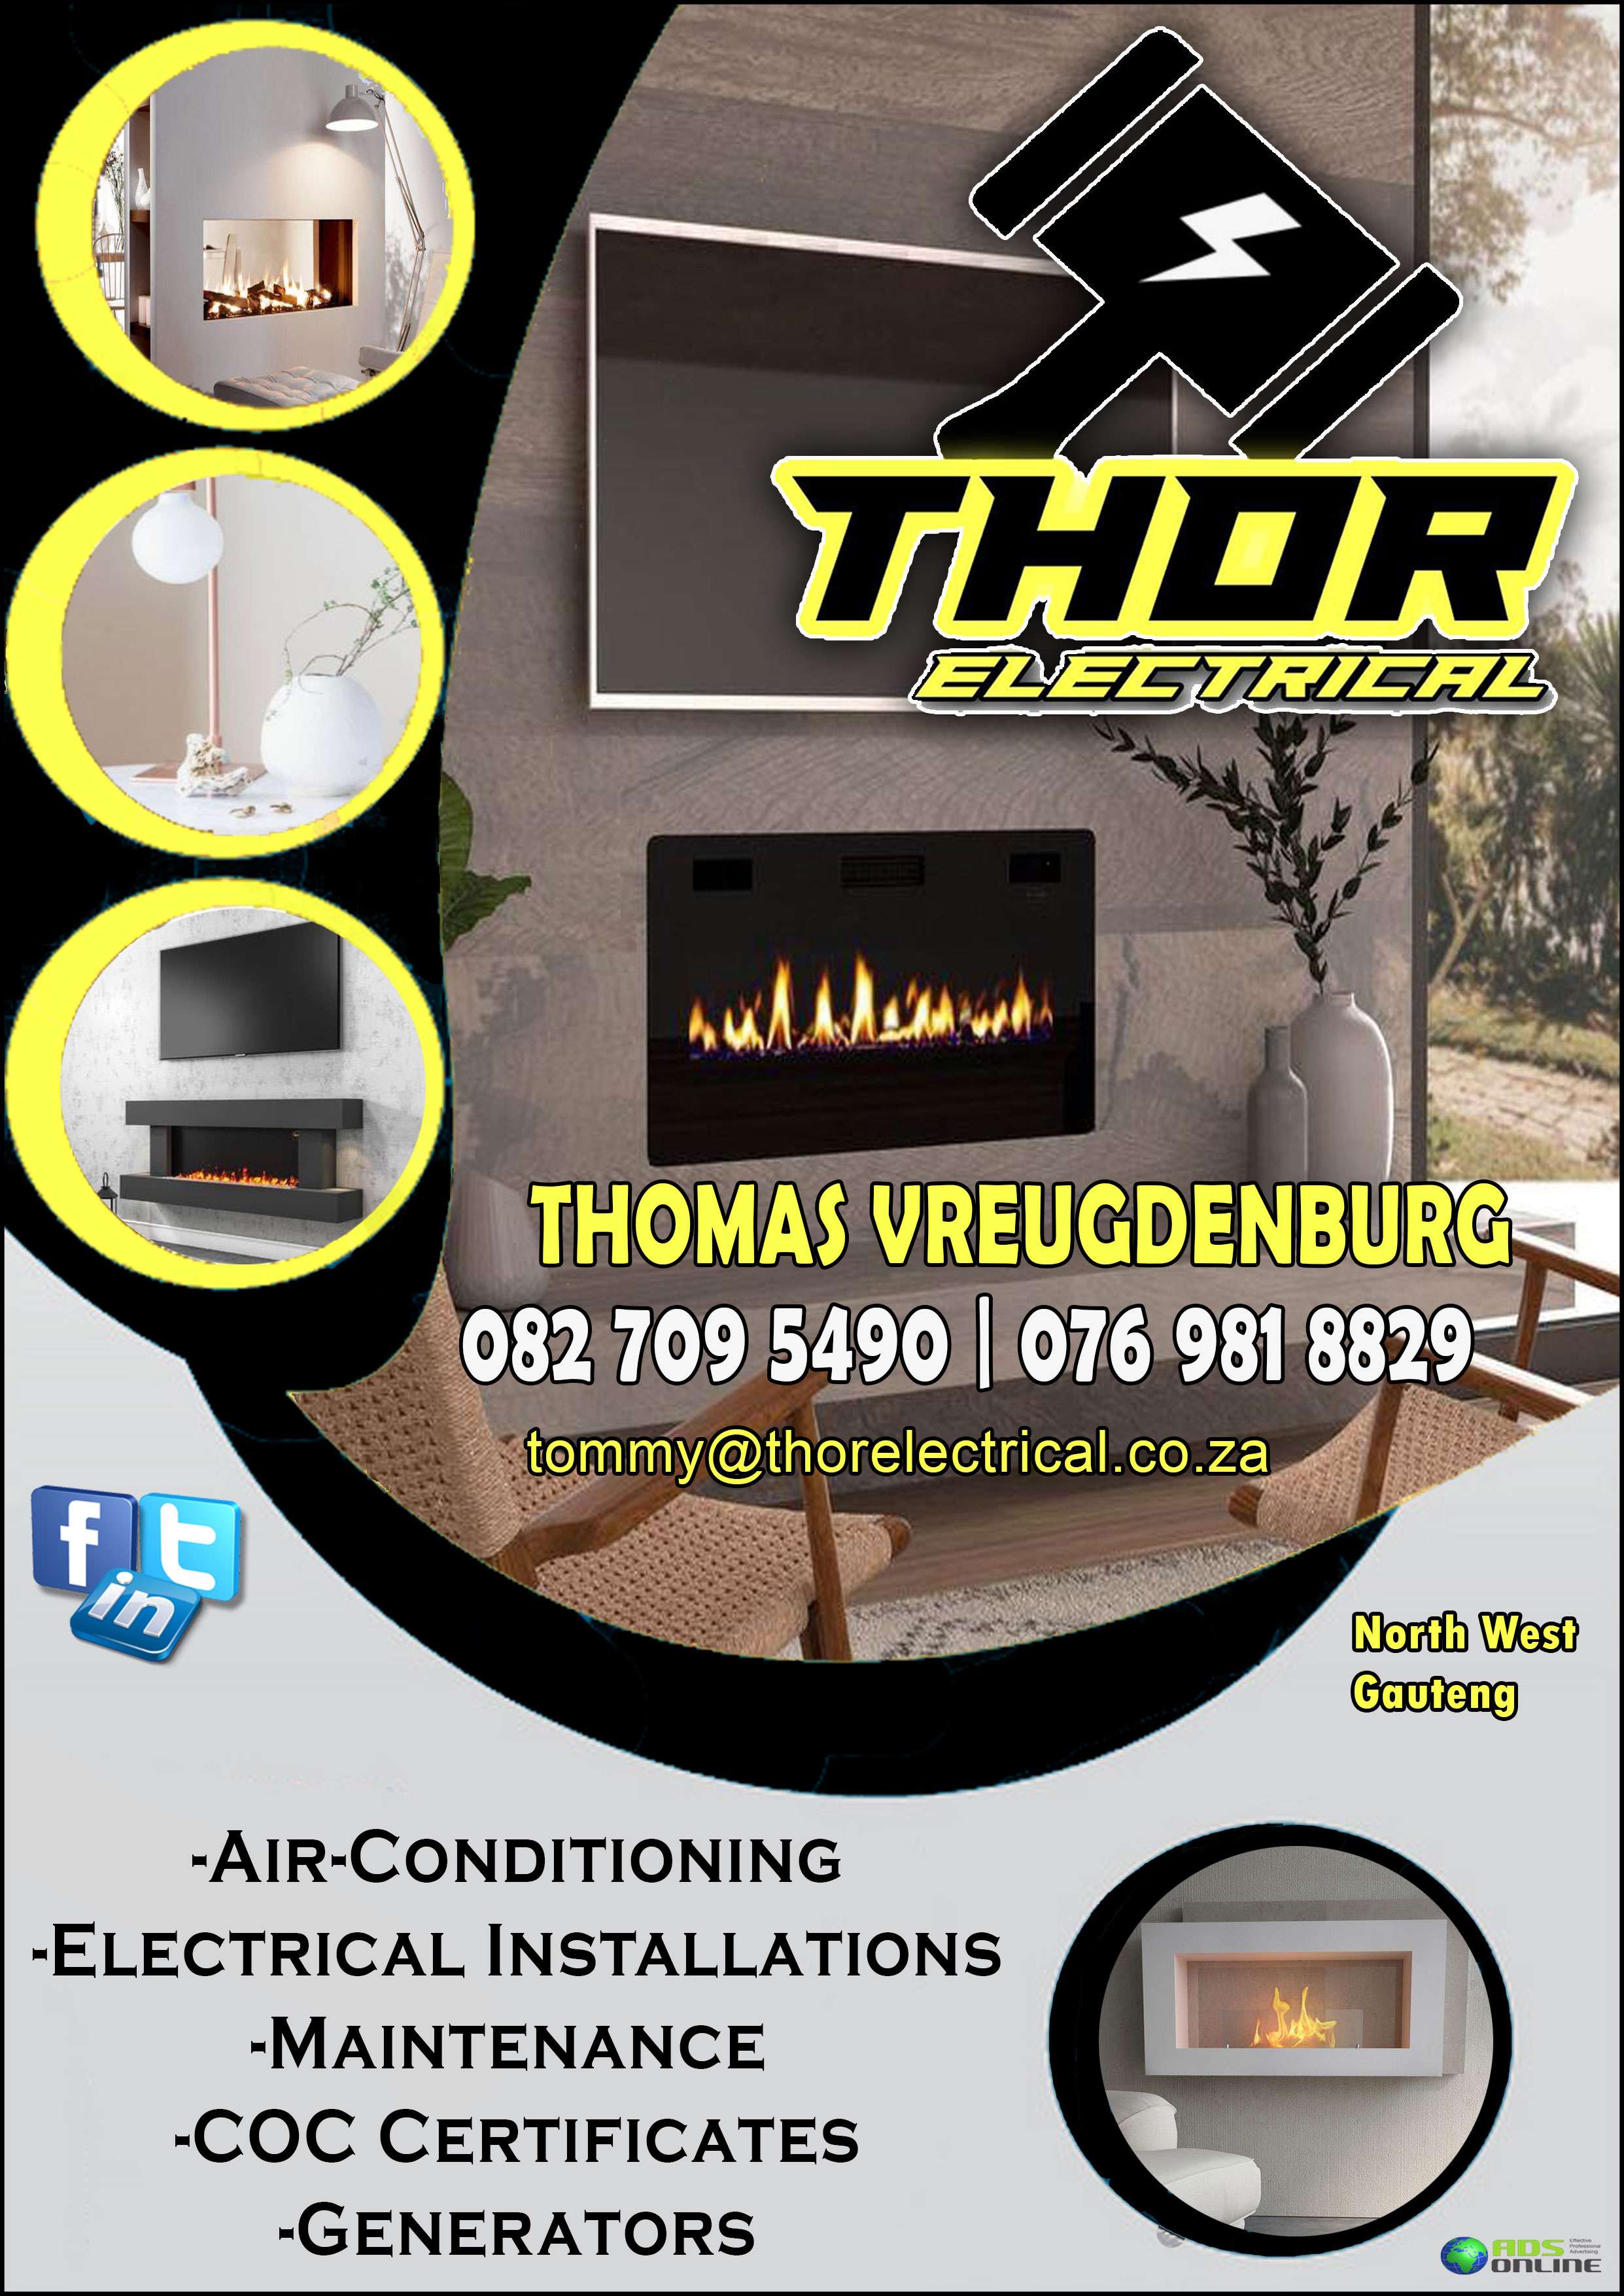 Thor Electrical | North West & Gauteng